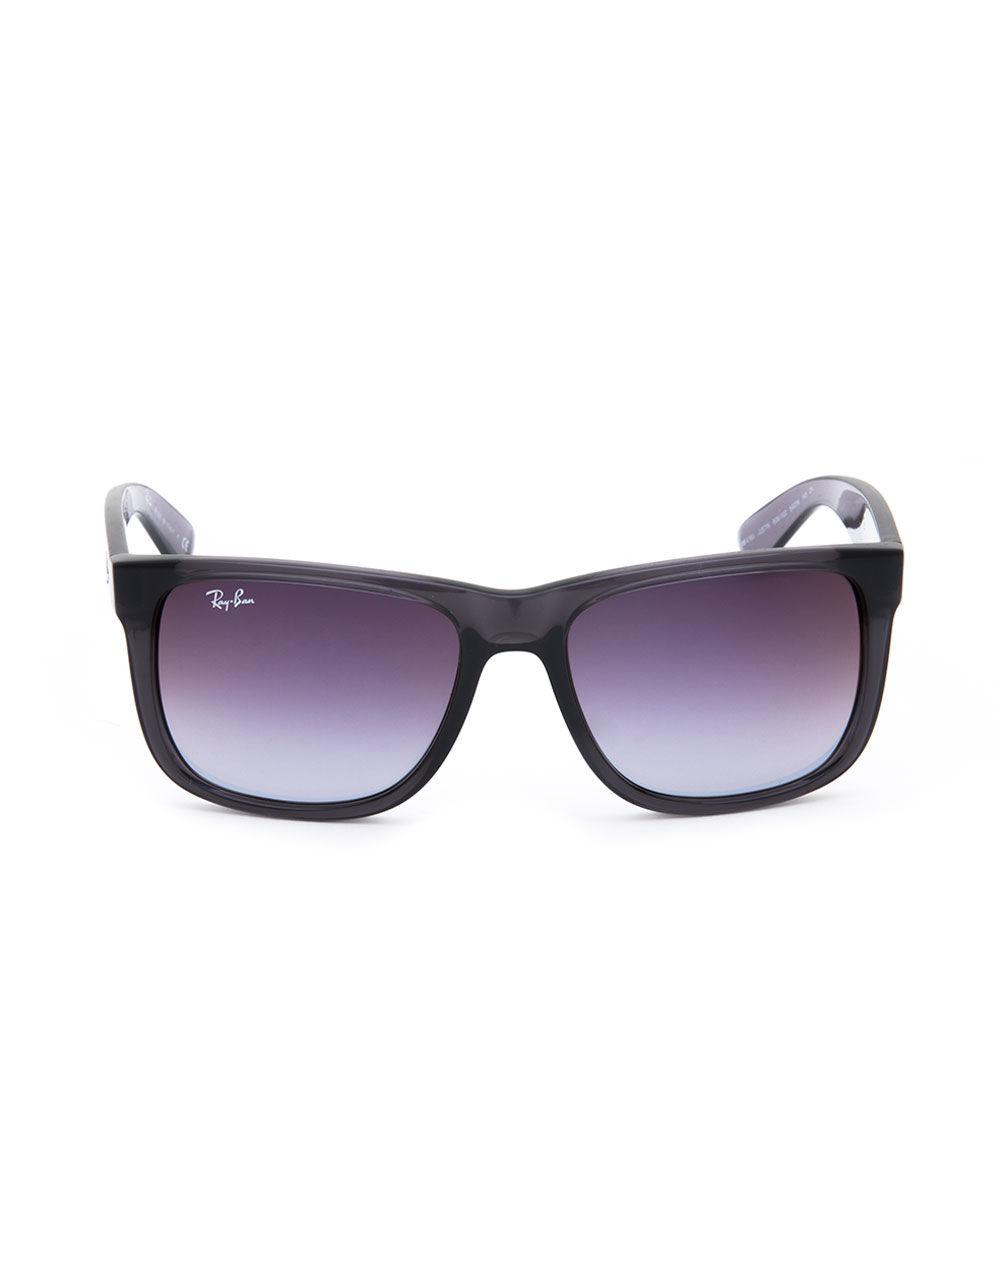 9e8f41e85e ... germany lyst ray ban justin flash gradient grey sunglasses in gray  74cfd 3c9c6